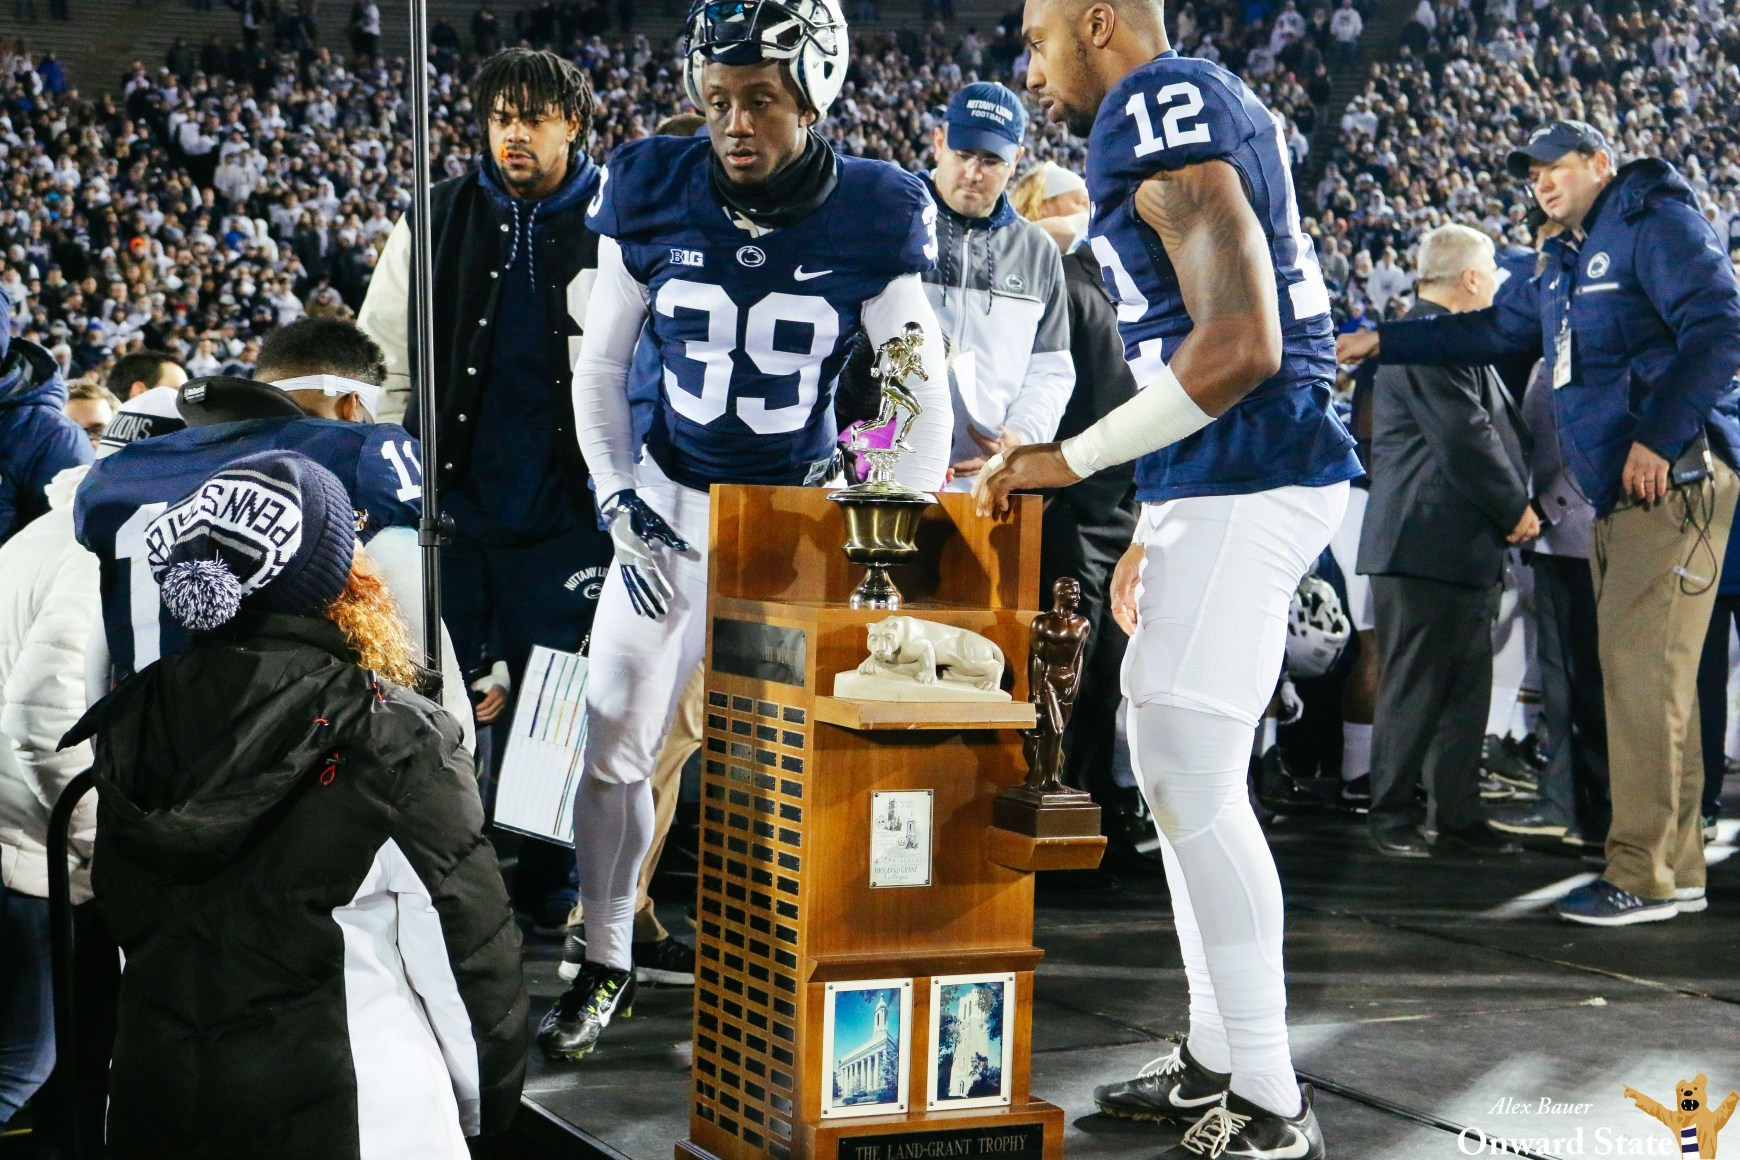 271e49630d Although Penn State lacks the time-honored legacies and rivalries of some  of its Big Ten peers